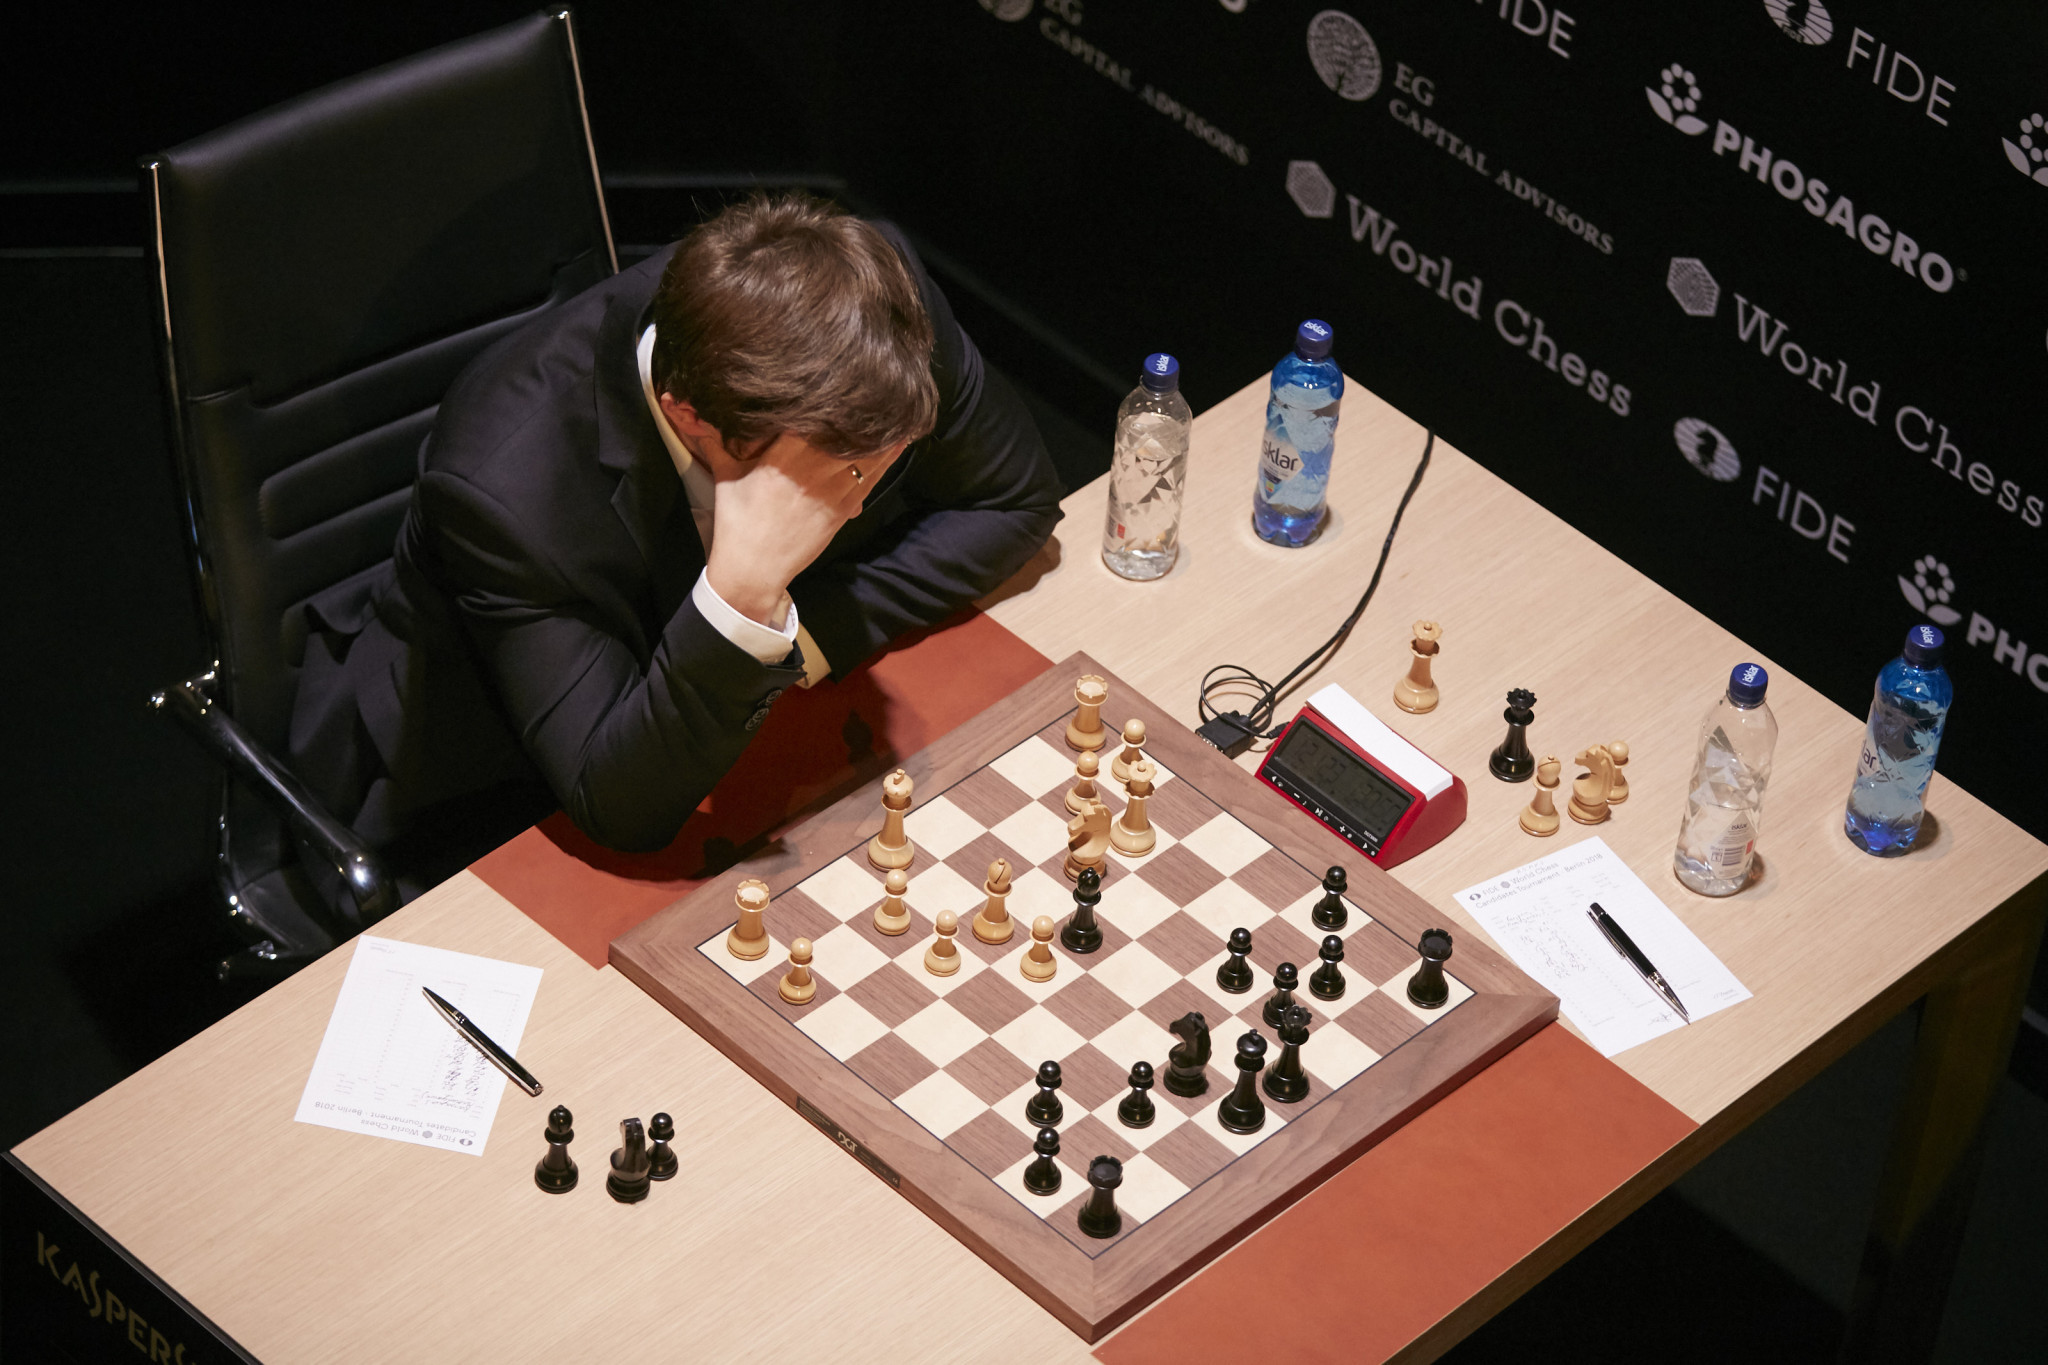 Russian Sergey Karjakin, the runner-up at the World Championship in 2016, is yet to win a match at the Candidates Tournament ©Getty Images